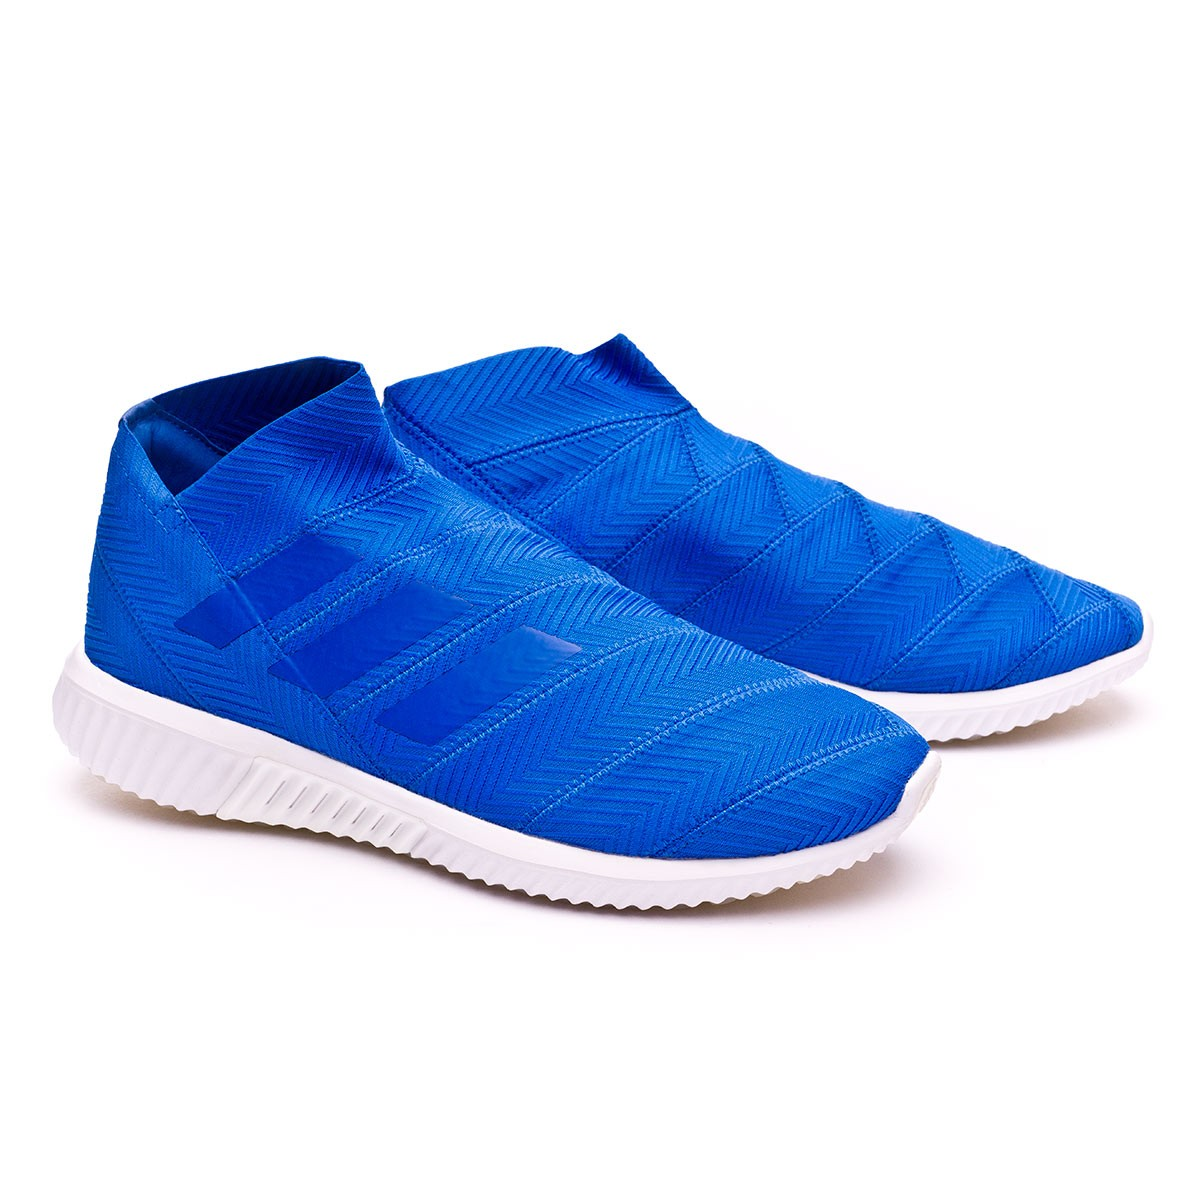 Trainers Adidas Nemeziz Tango 18 1 Tr Football Blue White